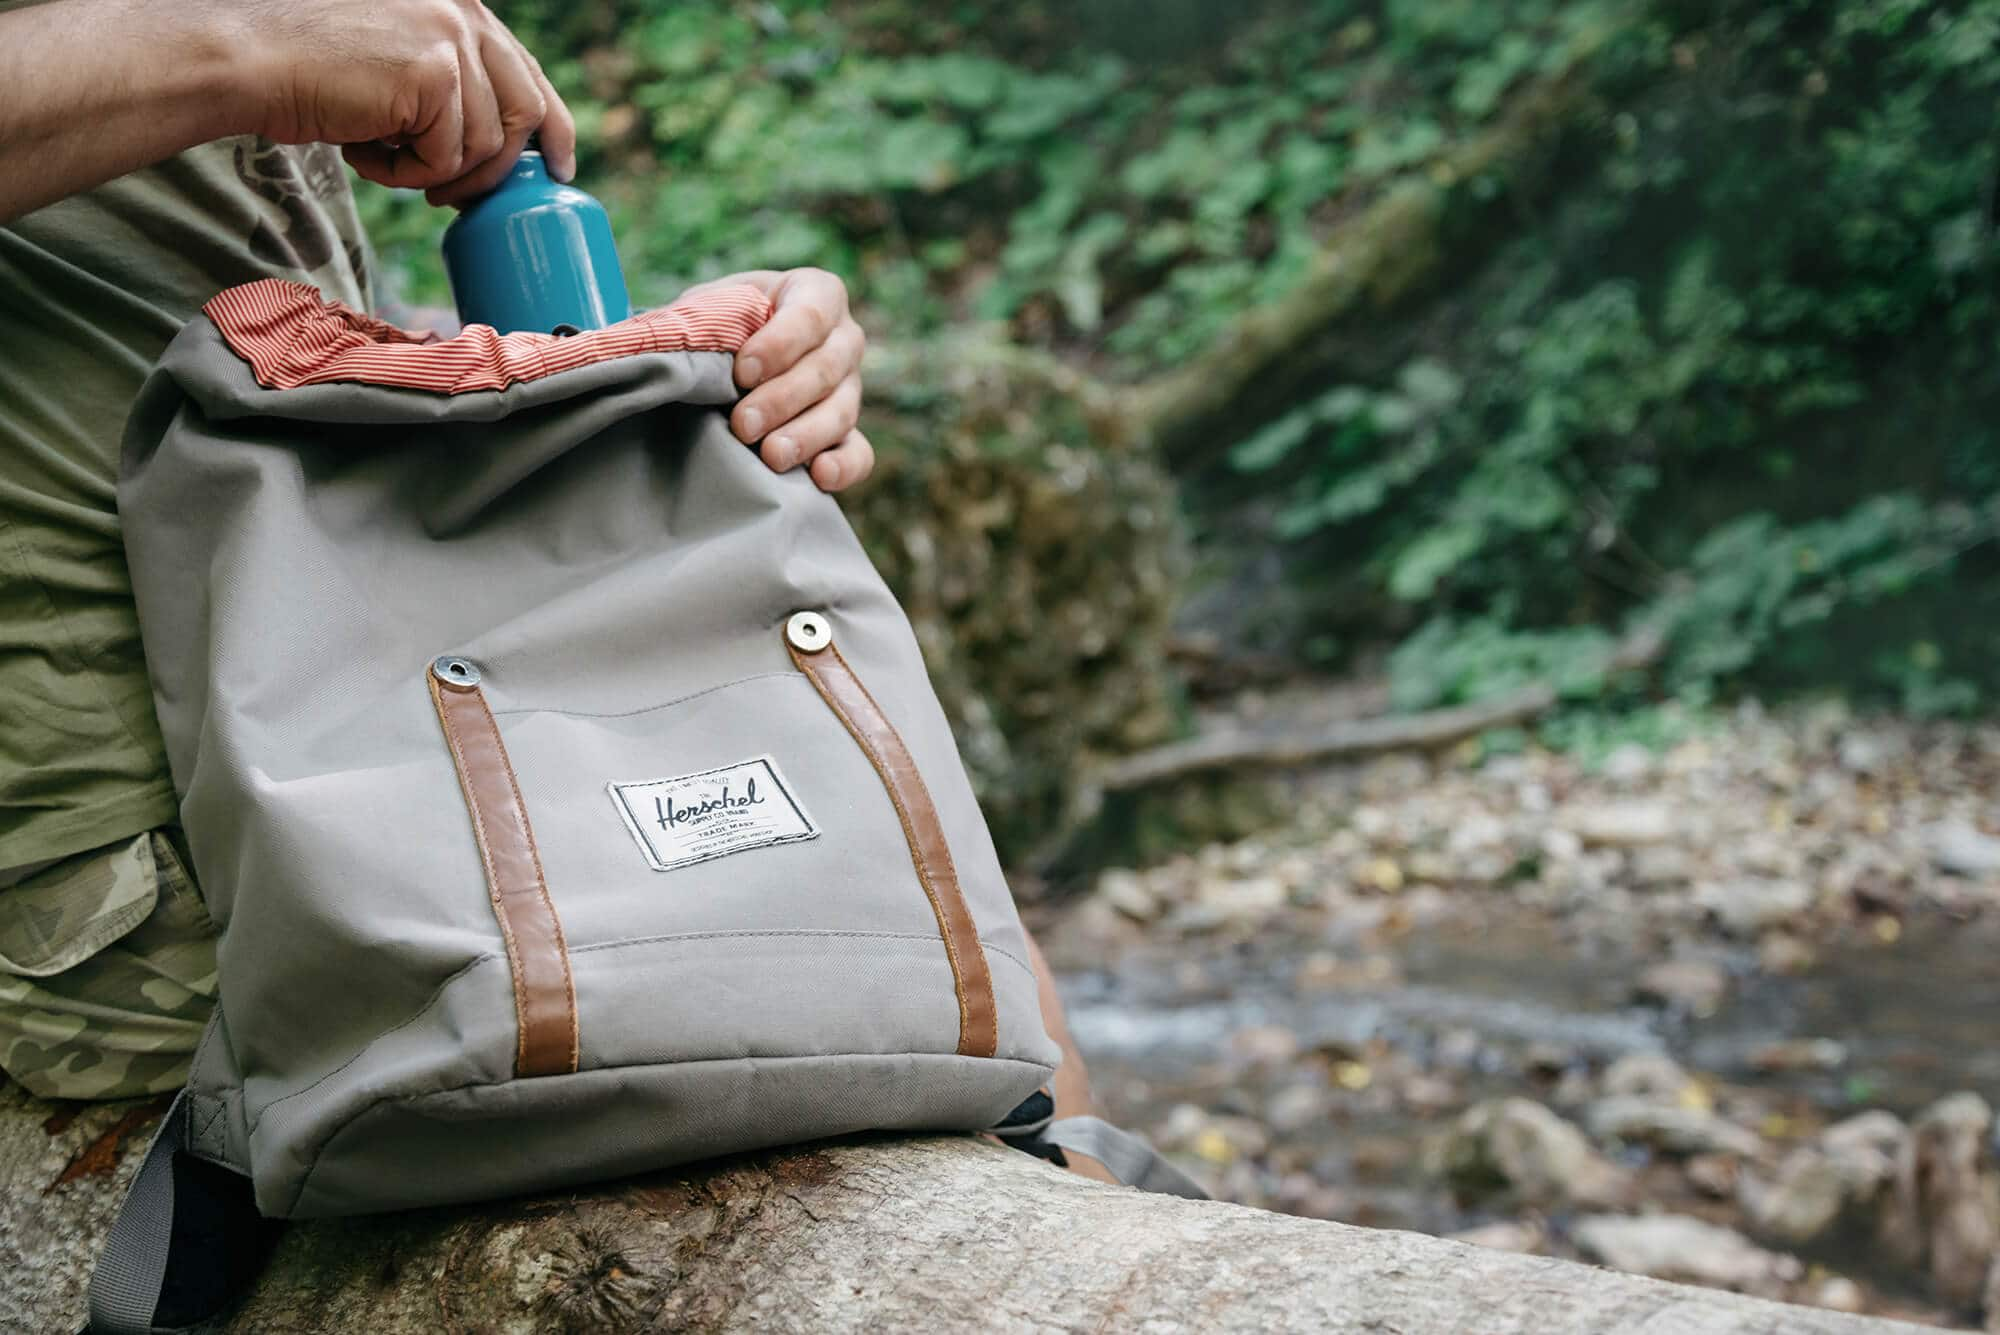 Herschel backpack hiking camping dirtyness needs cleaning